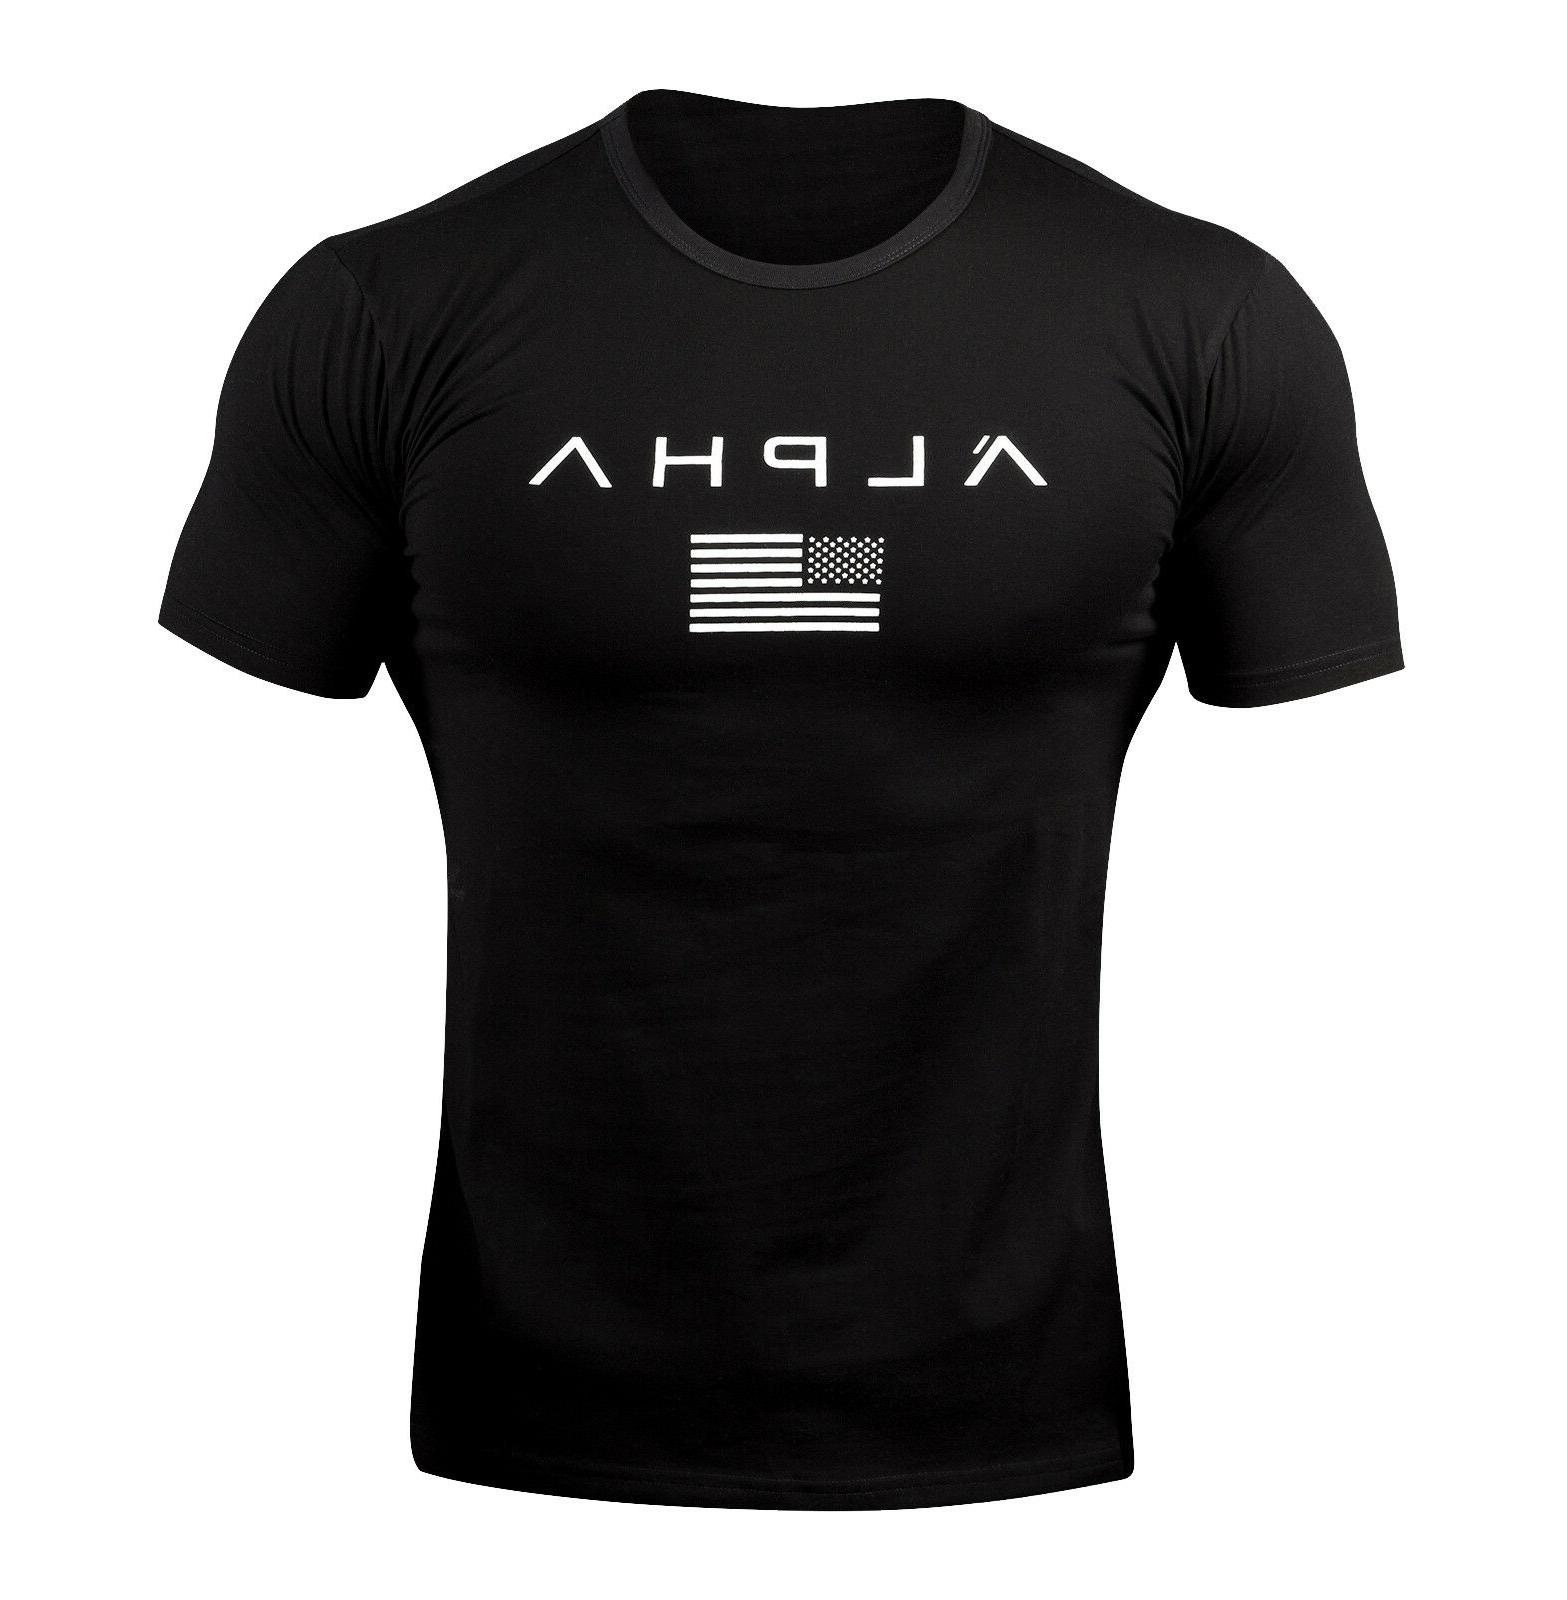 ALPHA Gym Muscle Tee Workout Clothes